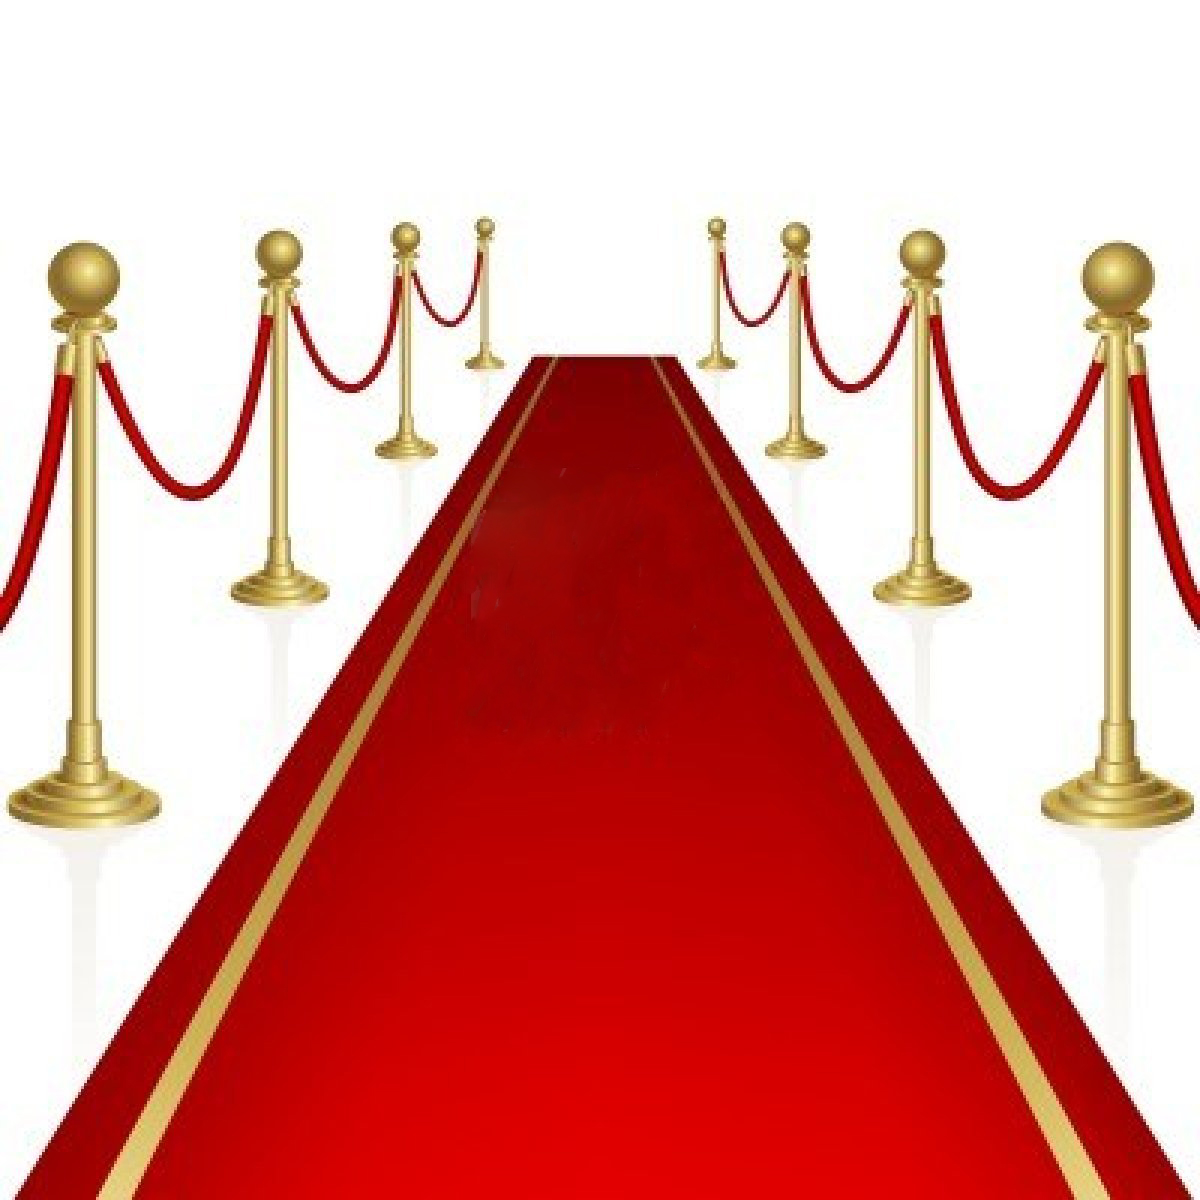 17808 Red Stage Curtain Design Vector Graphic 05 furthermore Free Hollywood Clipart as well Hollywood Cliparts Backgrounds together with Elegant Silhouette Beautiful Woman Who Is Elegant On The Red Carpet Star Celebrity Support Lovely 237379 furthermore Oscar Award Clipart. on oscar red carpet clip art